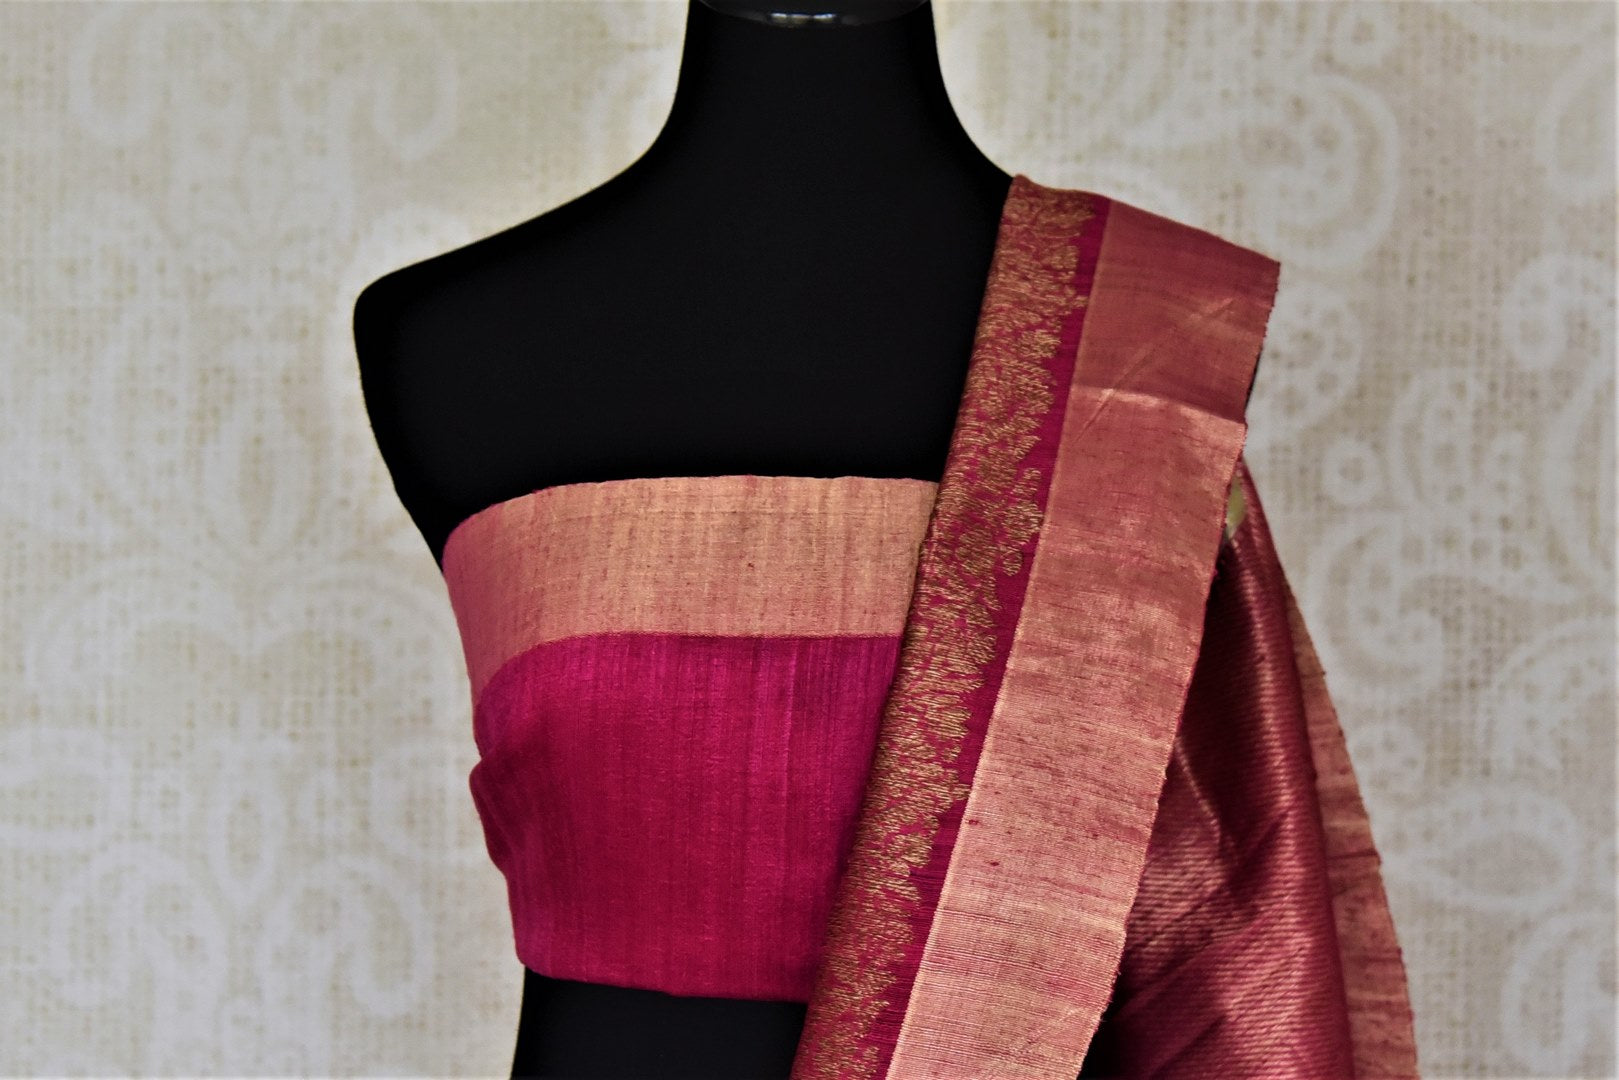 Shop beautiful mint green tussar Banarsi saree online in USA with pink antique zari border. Choose tasteful handloom sarees for special occasions from Pure Elegance. Our exclusive Indian fashion store has a myriad of exquisite pure silk saris, tussar sarees, Banarasi sarees for Indian women in USA.-blouse pallu